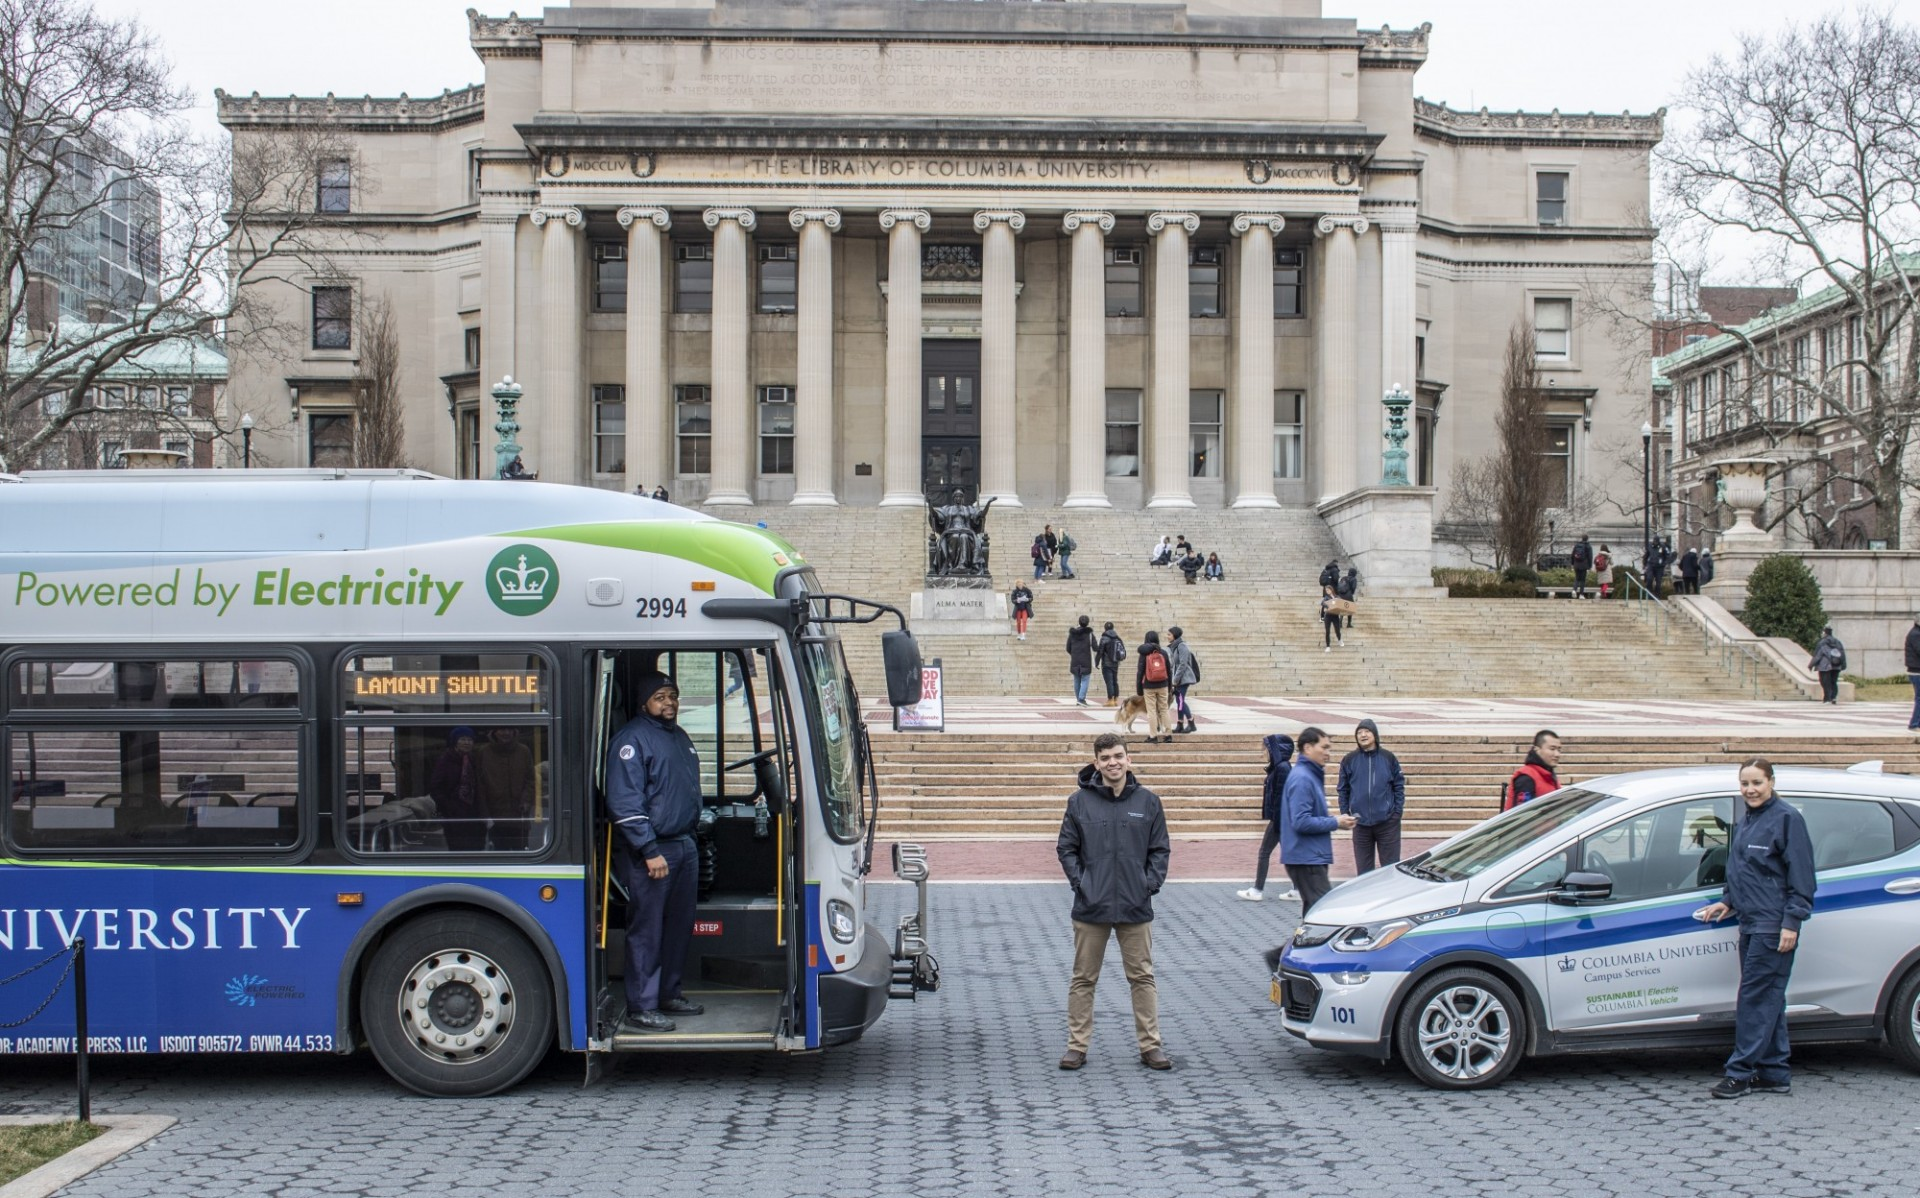 Electric bus and vehicle on campus